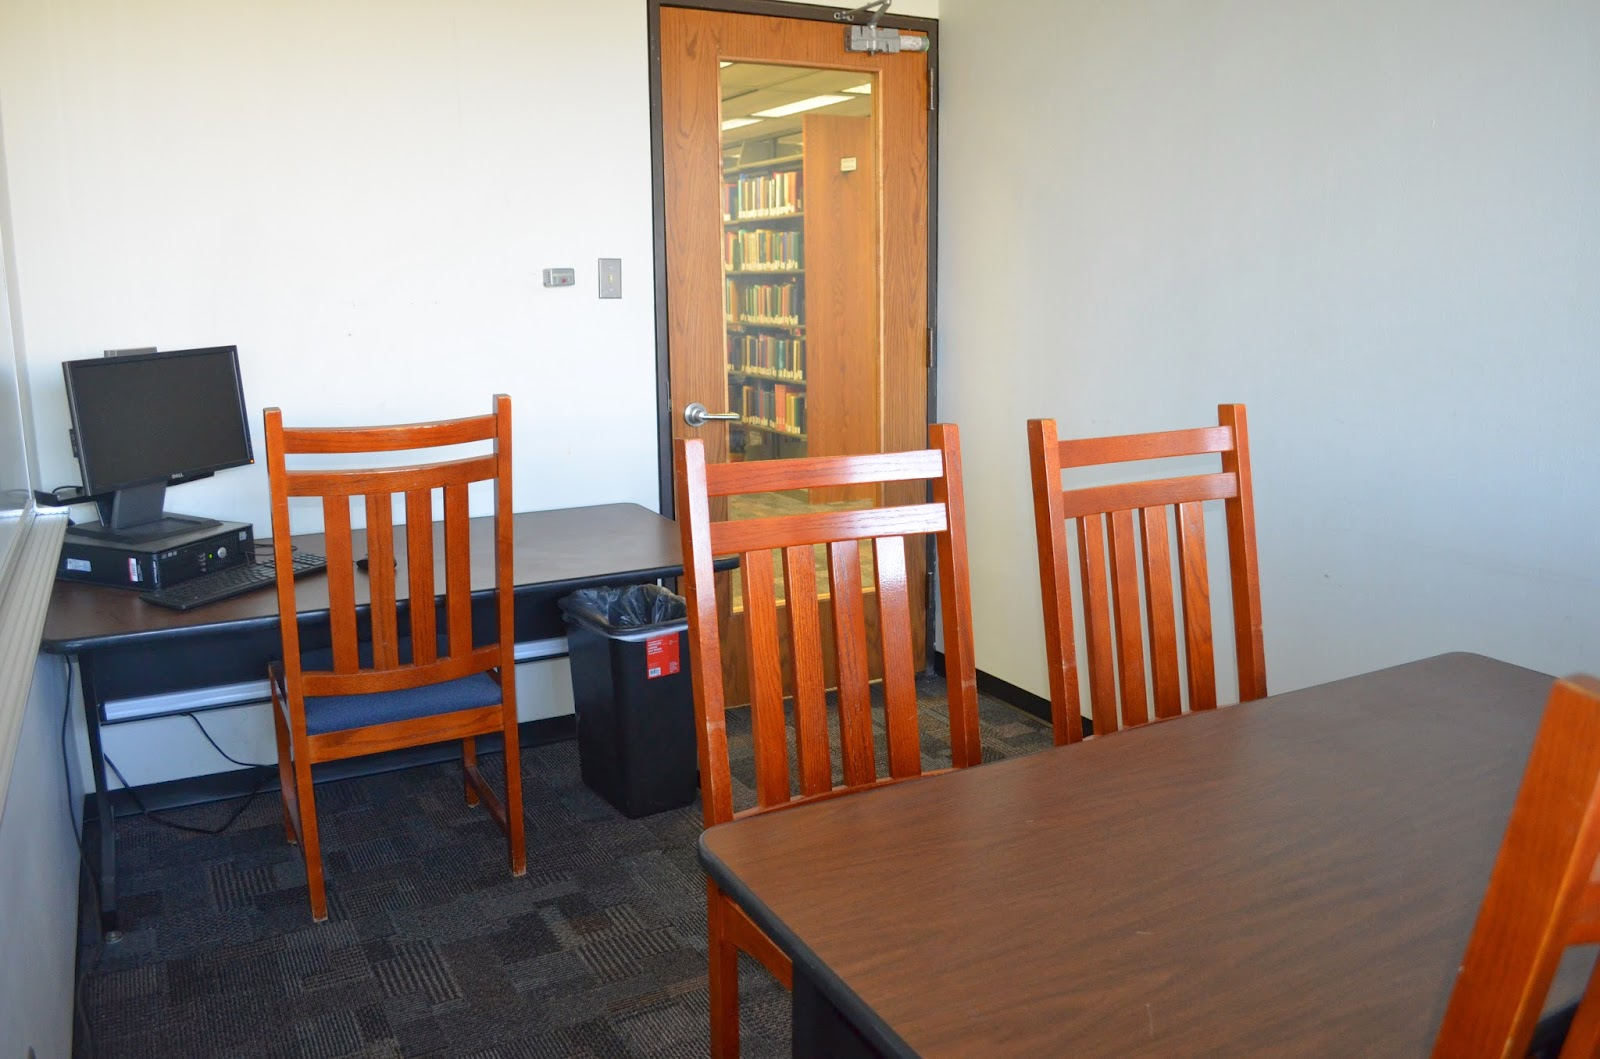 Mcdermott Library Rooms